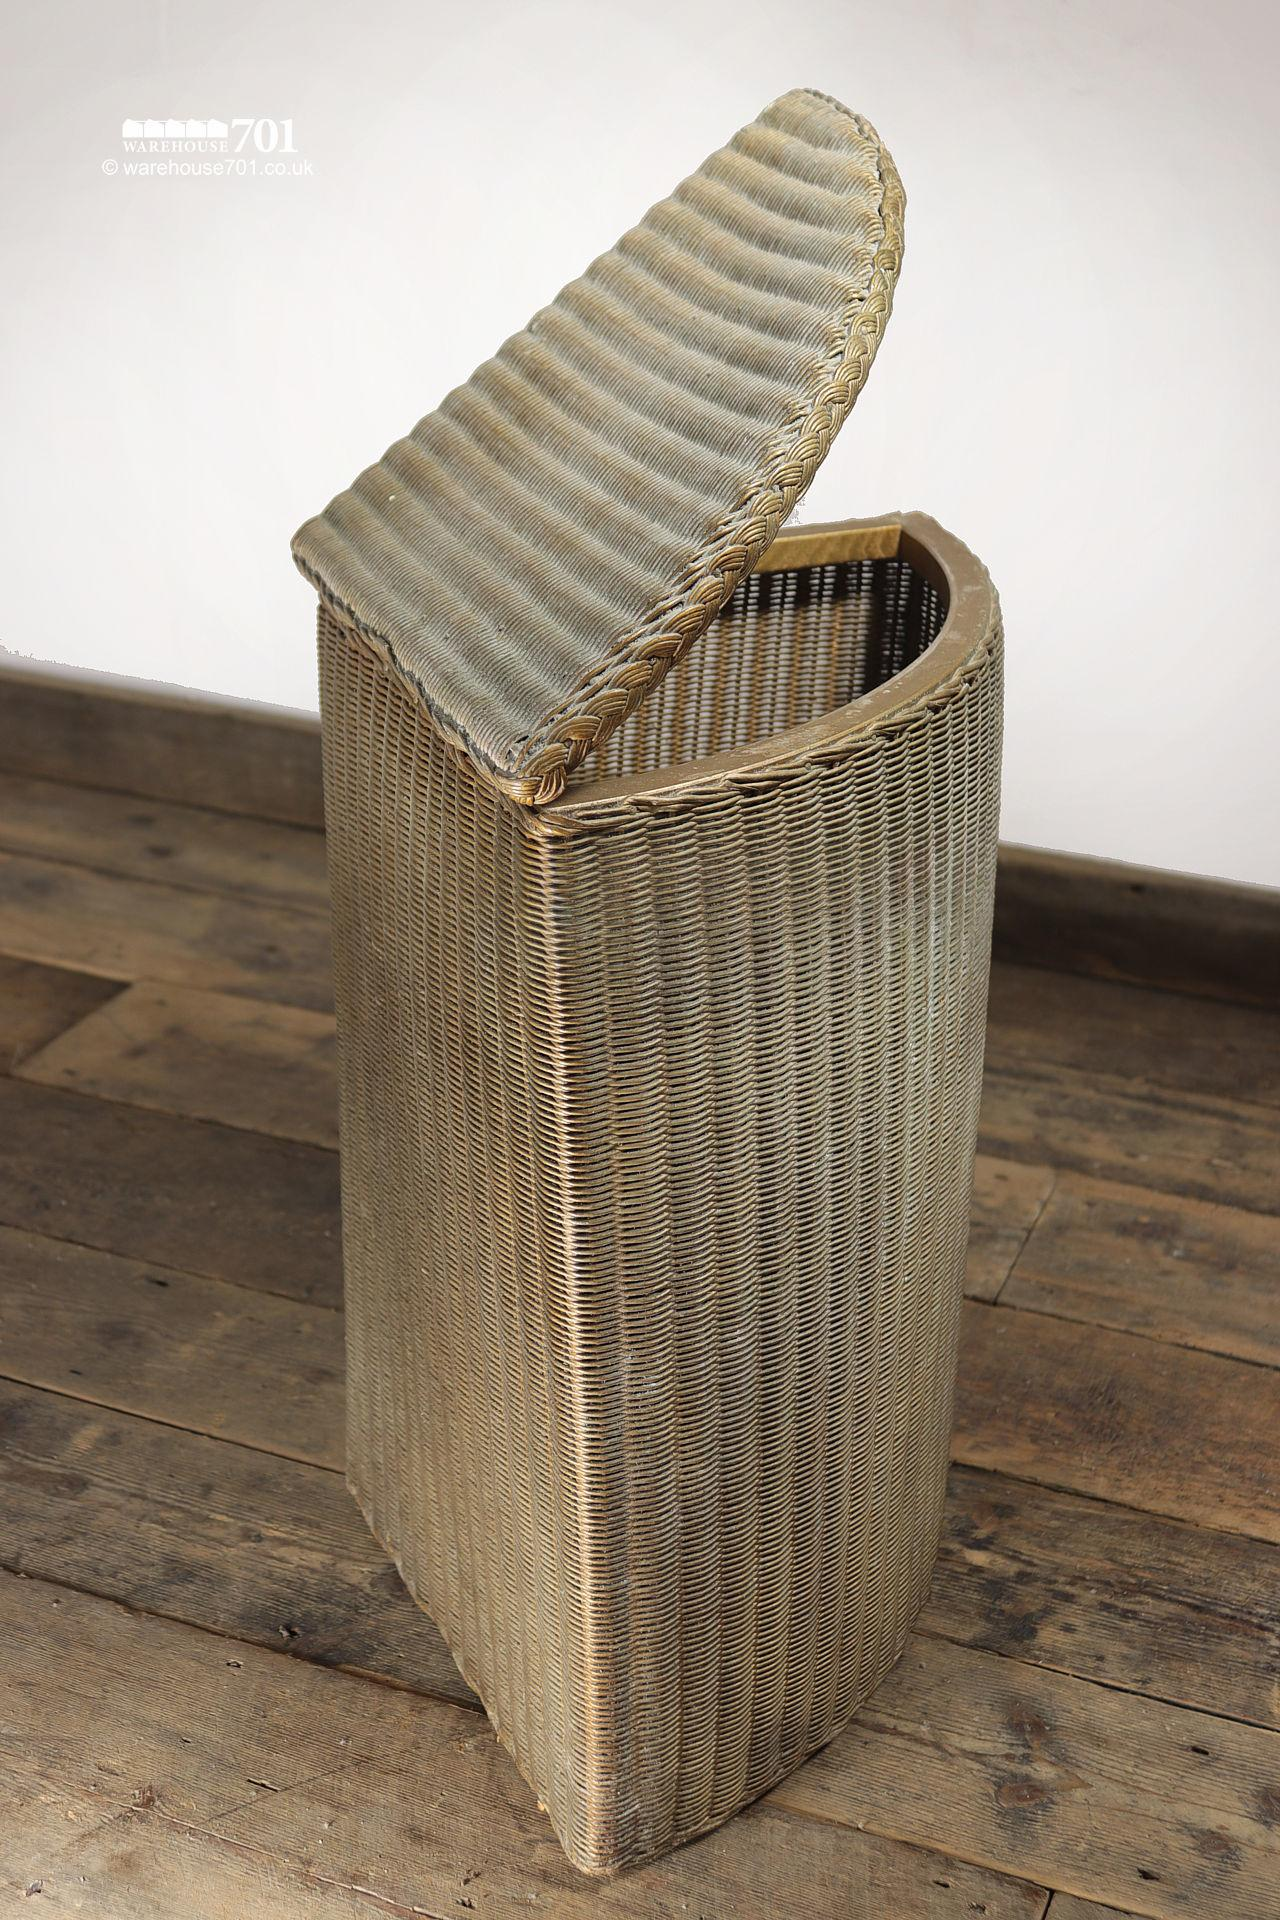 Authentic Period Gold Lloyd Loom Quadrant Laundry Basket #3